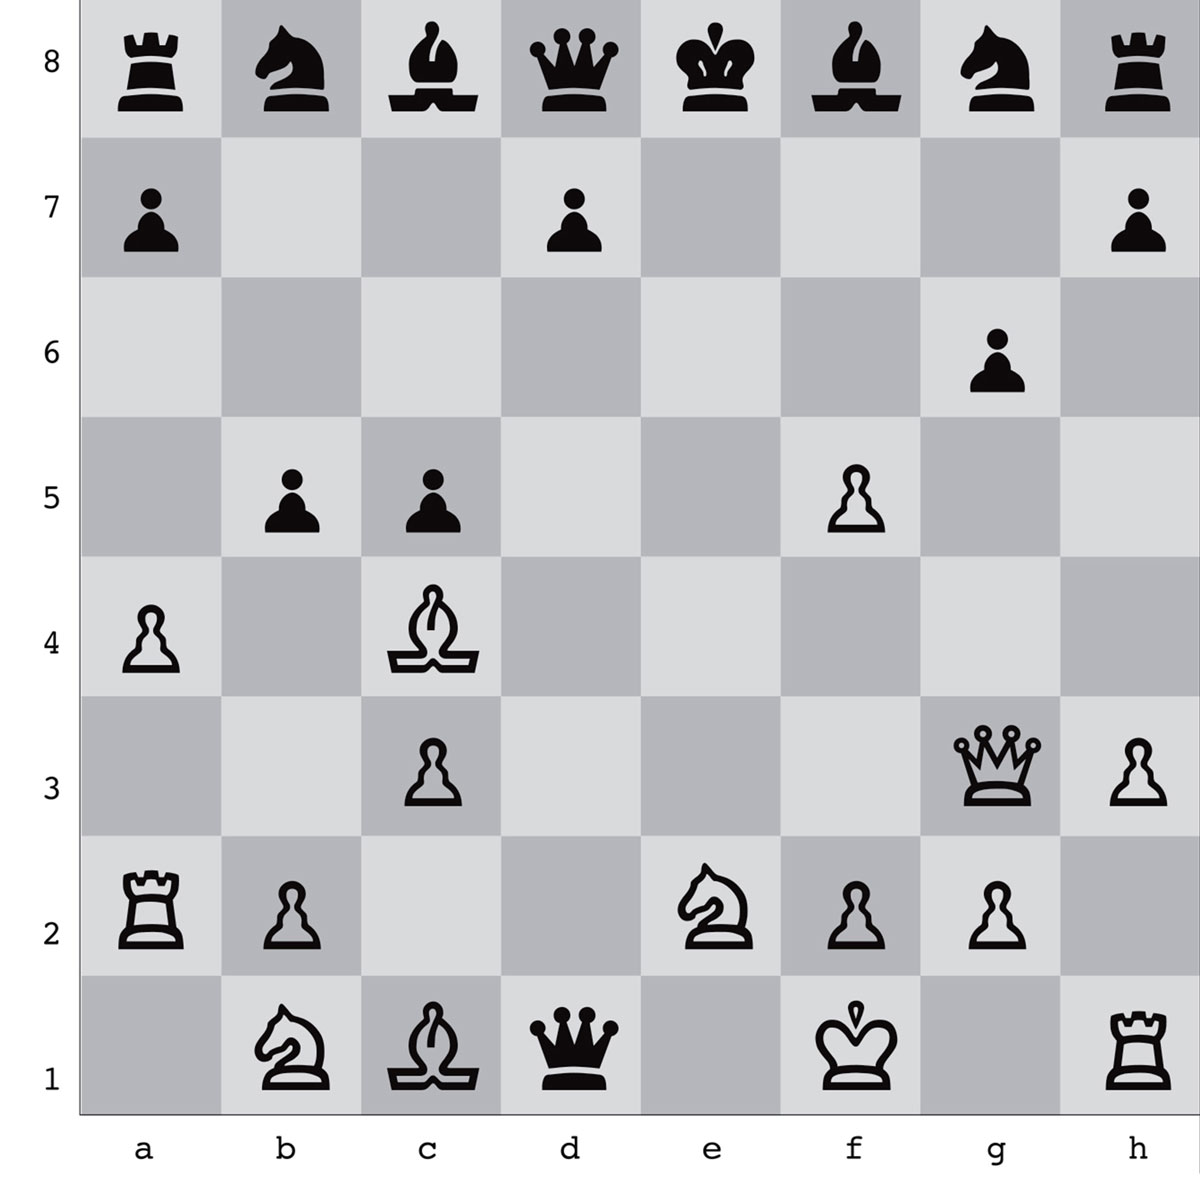 Cabinet Reading To The Endgame Chess Checkmate Diagram Puzzle From A Variation Of Prussian Pawn Effi Briest Playing Black Goes Straight Up Gut Against An Inattentive Angelina Crucial Move Being